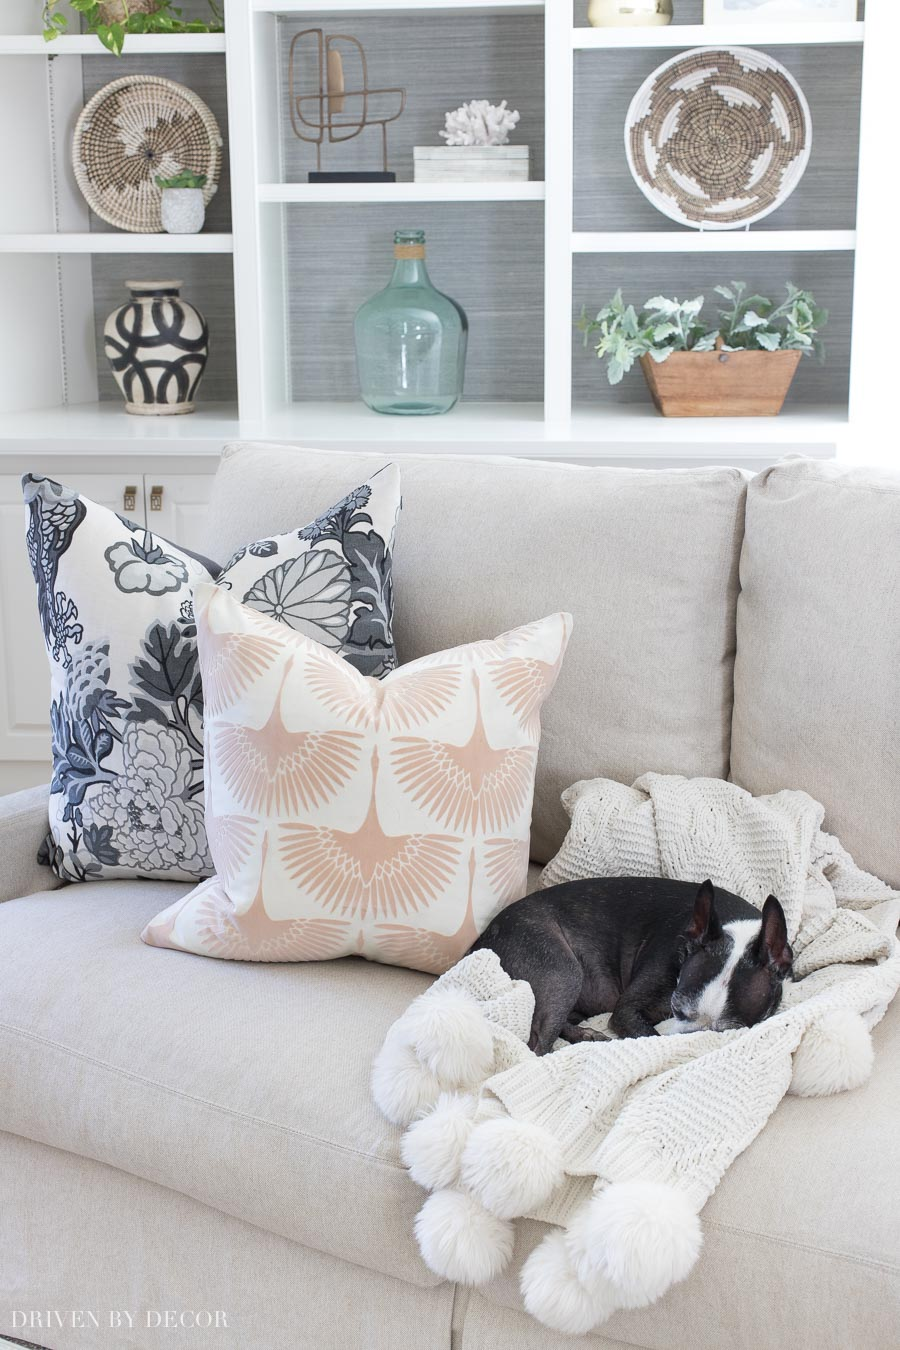 The prettiest blush velvet pillows! Love how the look with the grays! Linked in post!